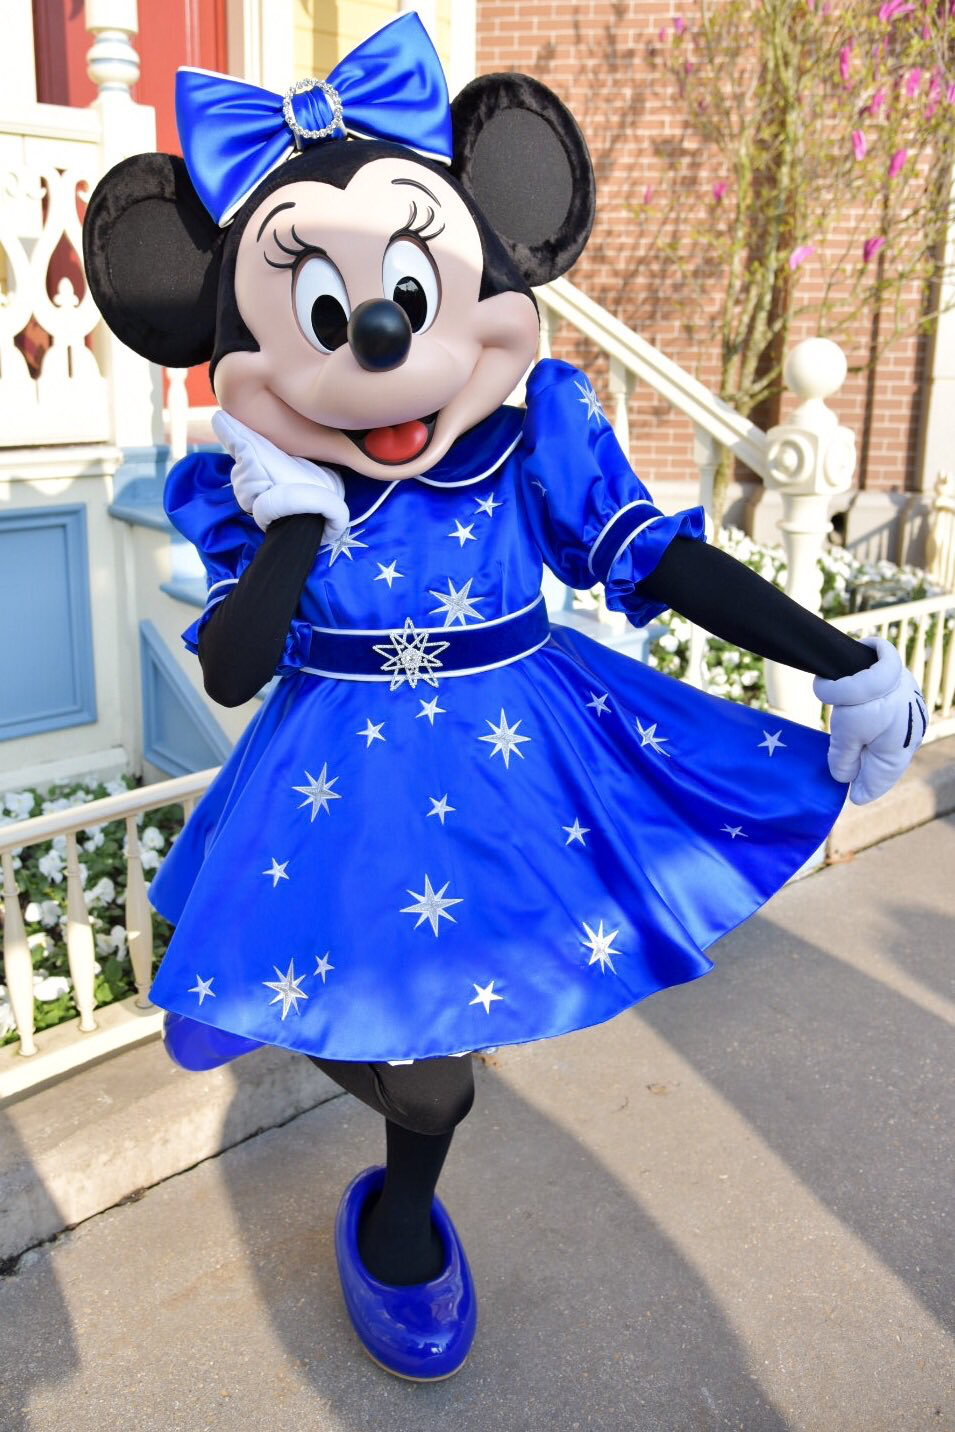 Sweet Minnie Mouse 25th Anniversary Celebration